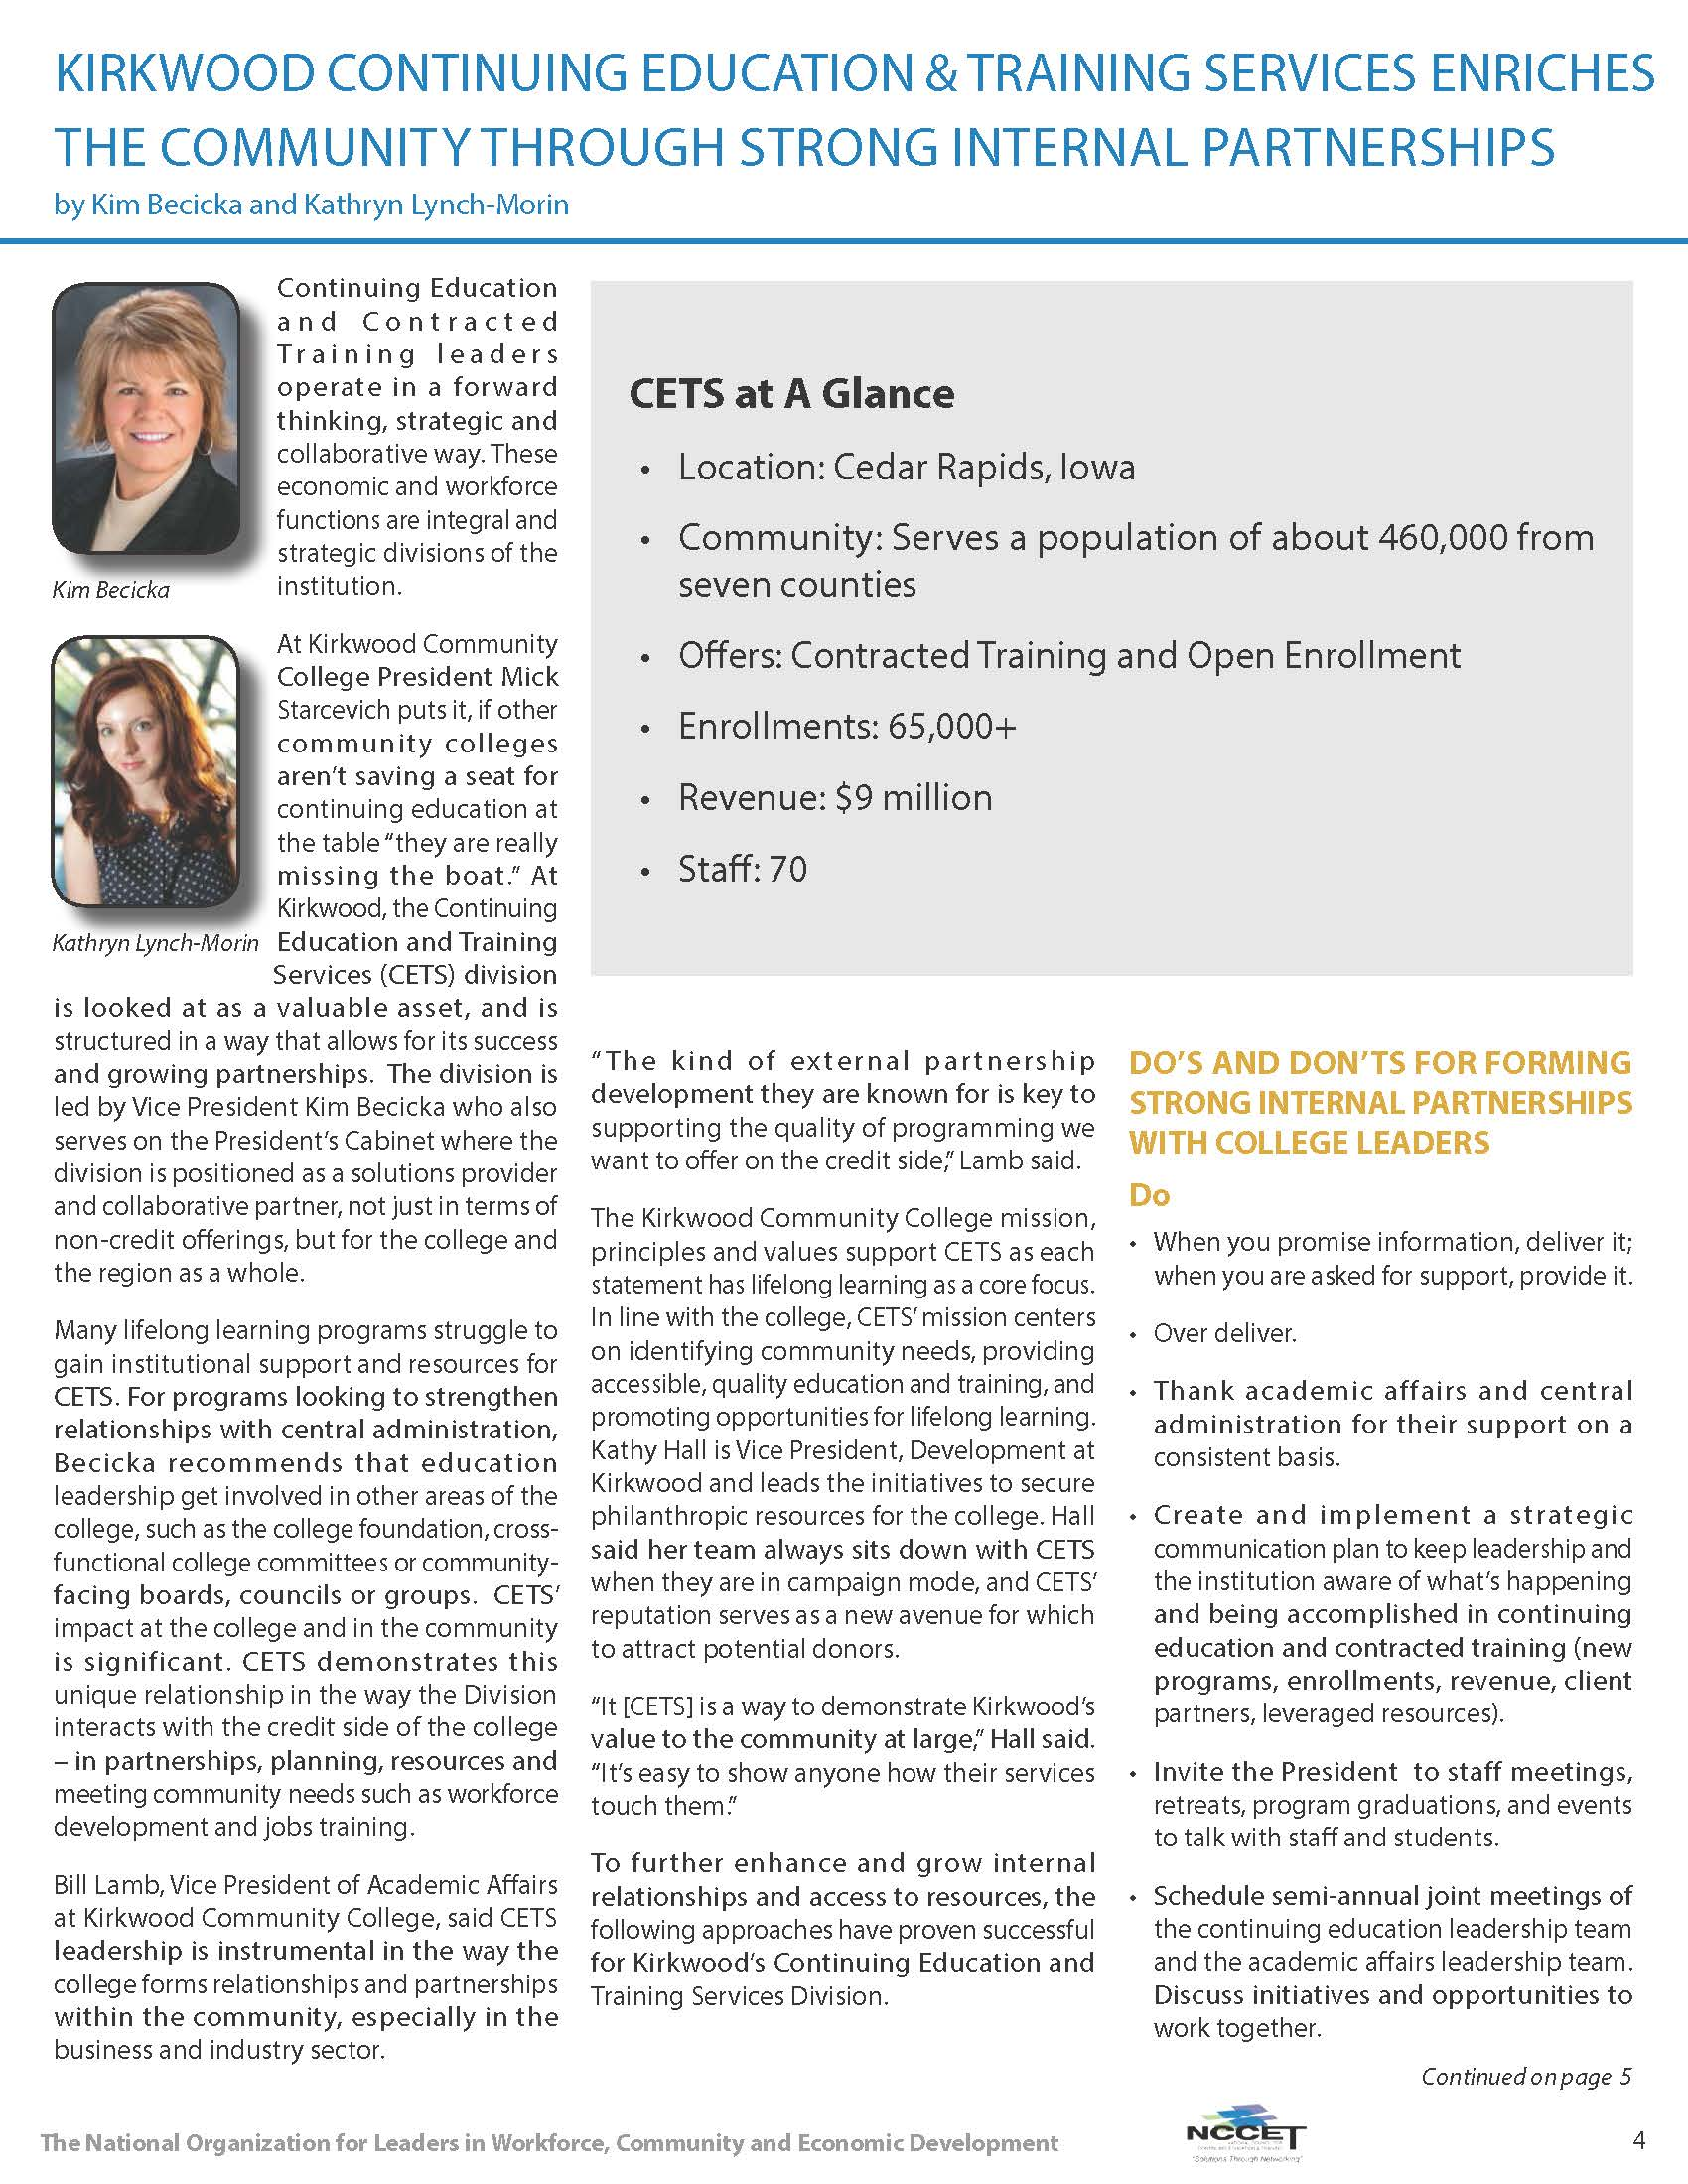 catalyst_article_Page_1.jpg